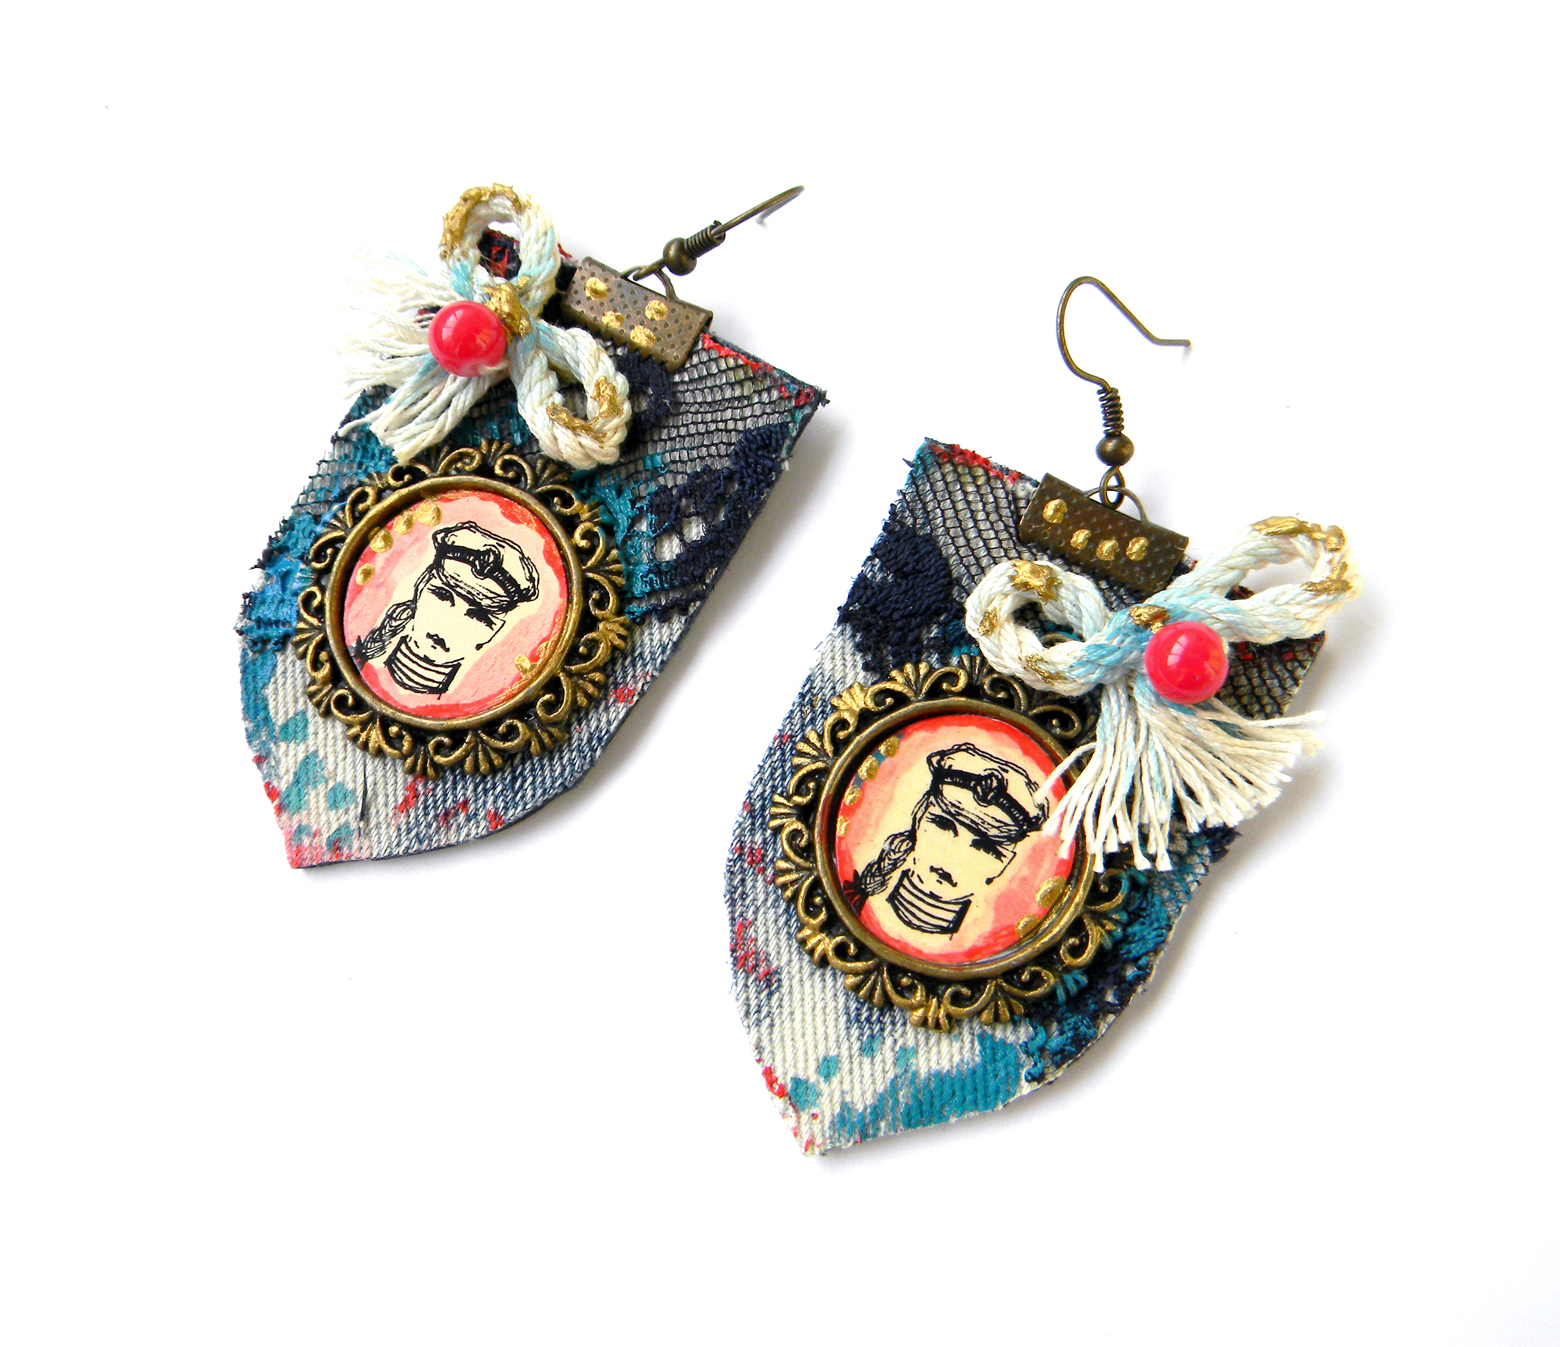 Unique Jewelry Handmade Earrings Fashion Jewelry